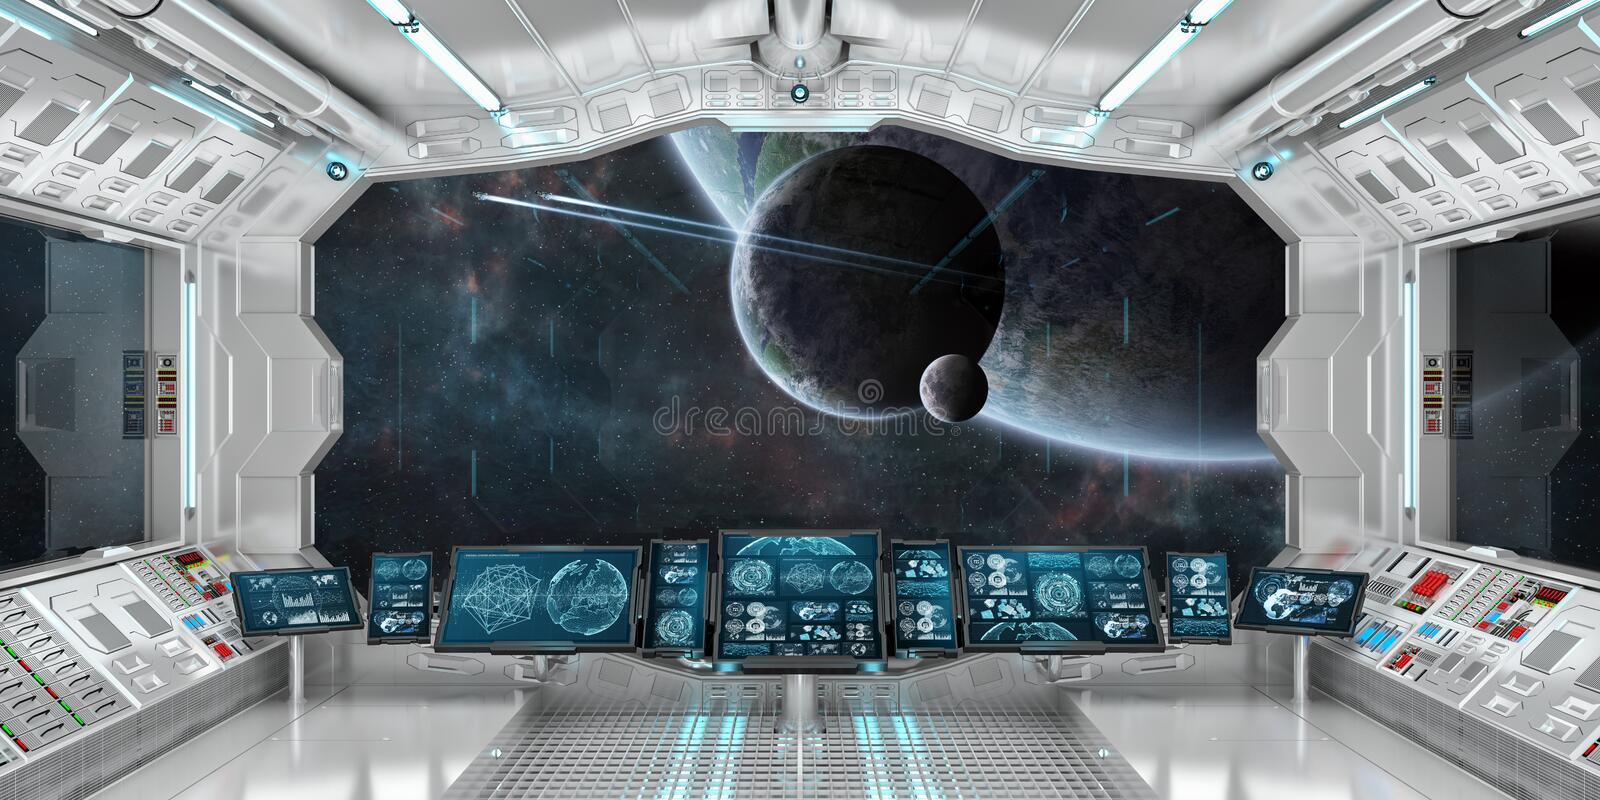 Spaceship interior with view on distant planets system 3D render vector illustration